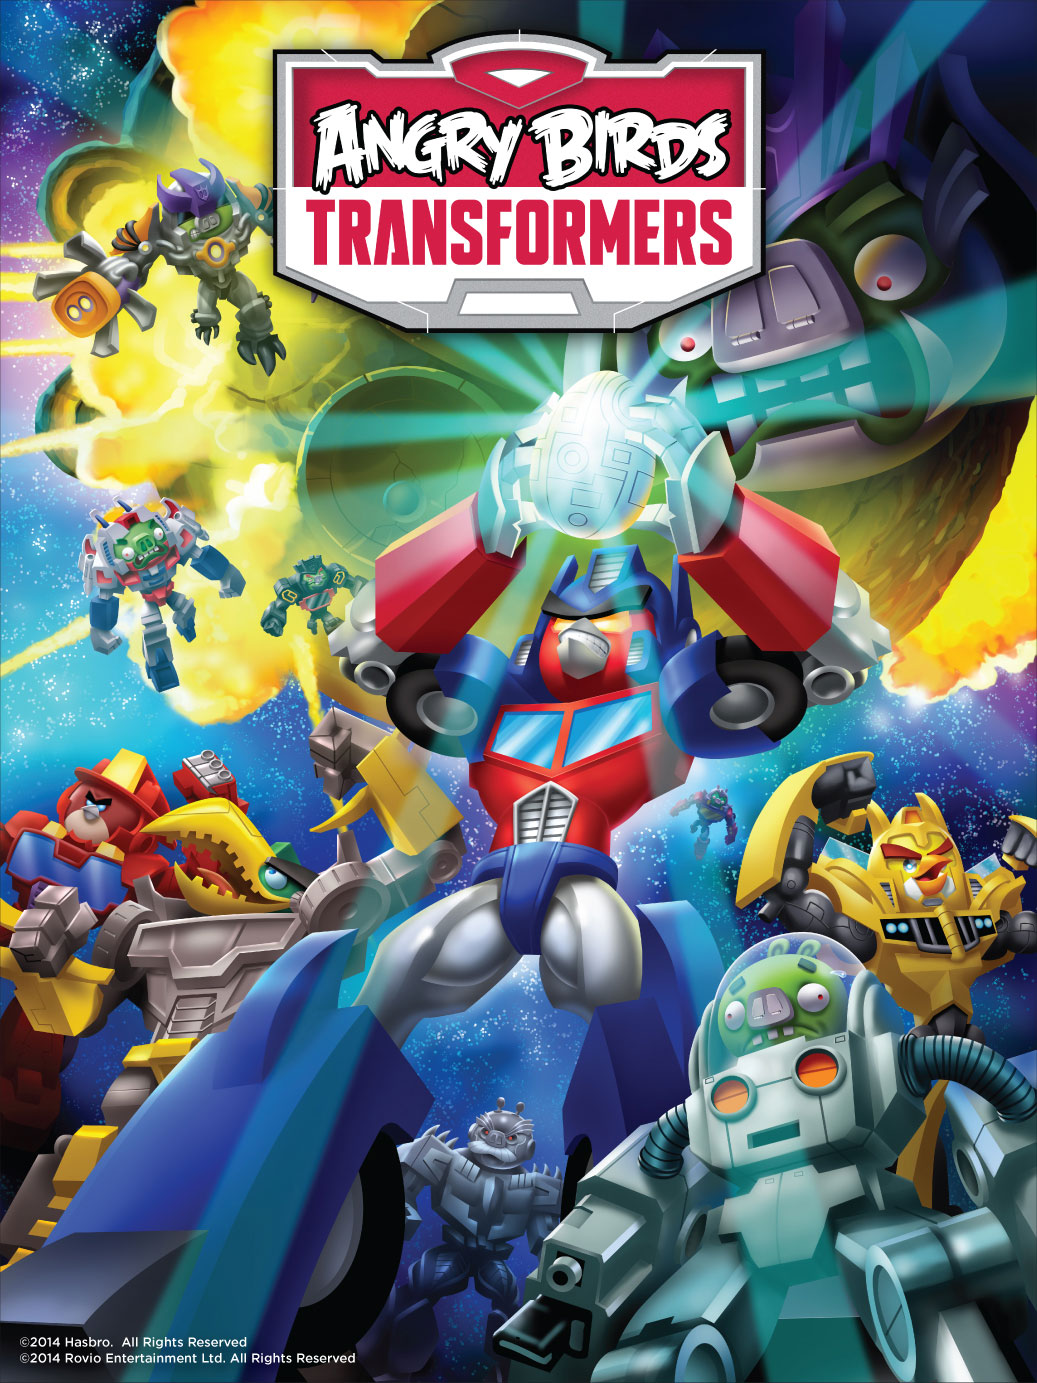 ROVIO AND HASBRO TEAM UP TO PRESENT TRANSFORMERS AND ANGRY BIRDS IN A BRAND NEW MASH-UP